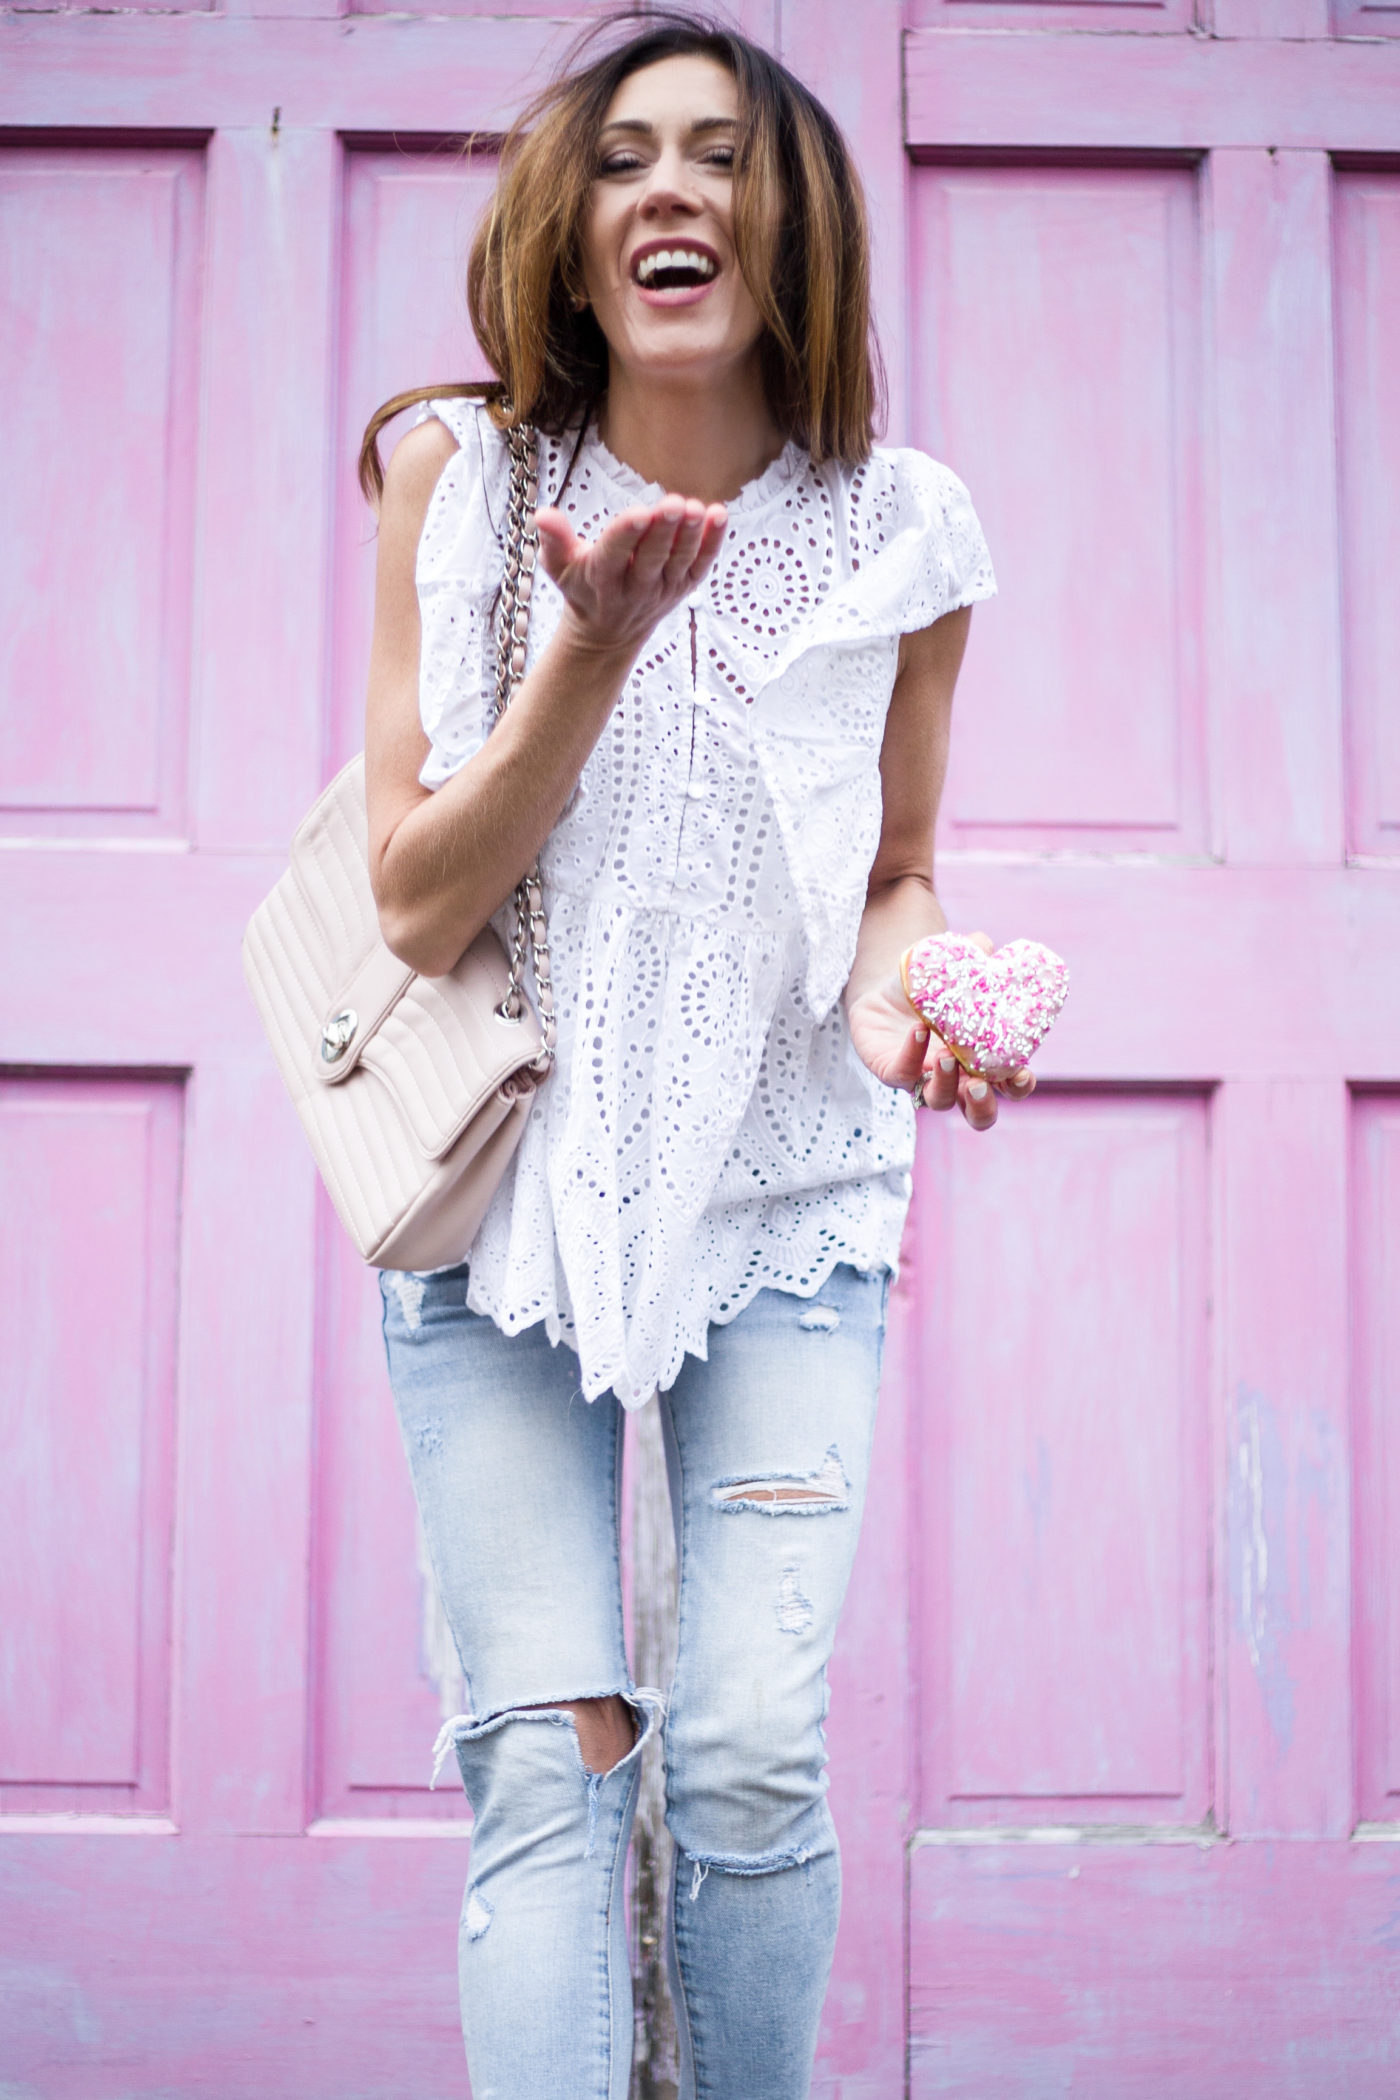 Spring top you NEED in your closet